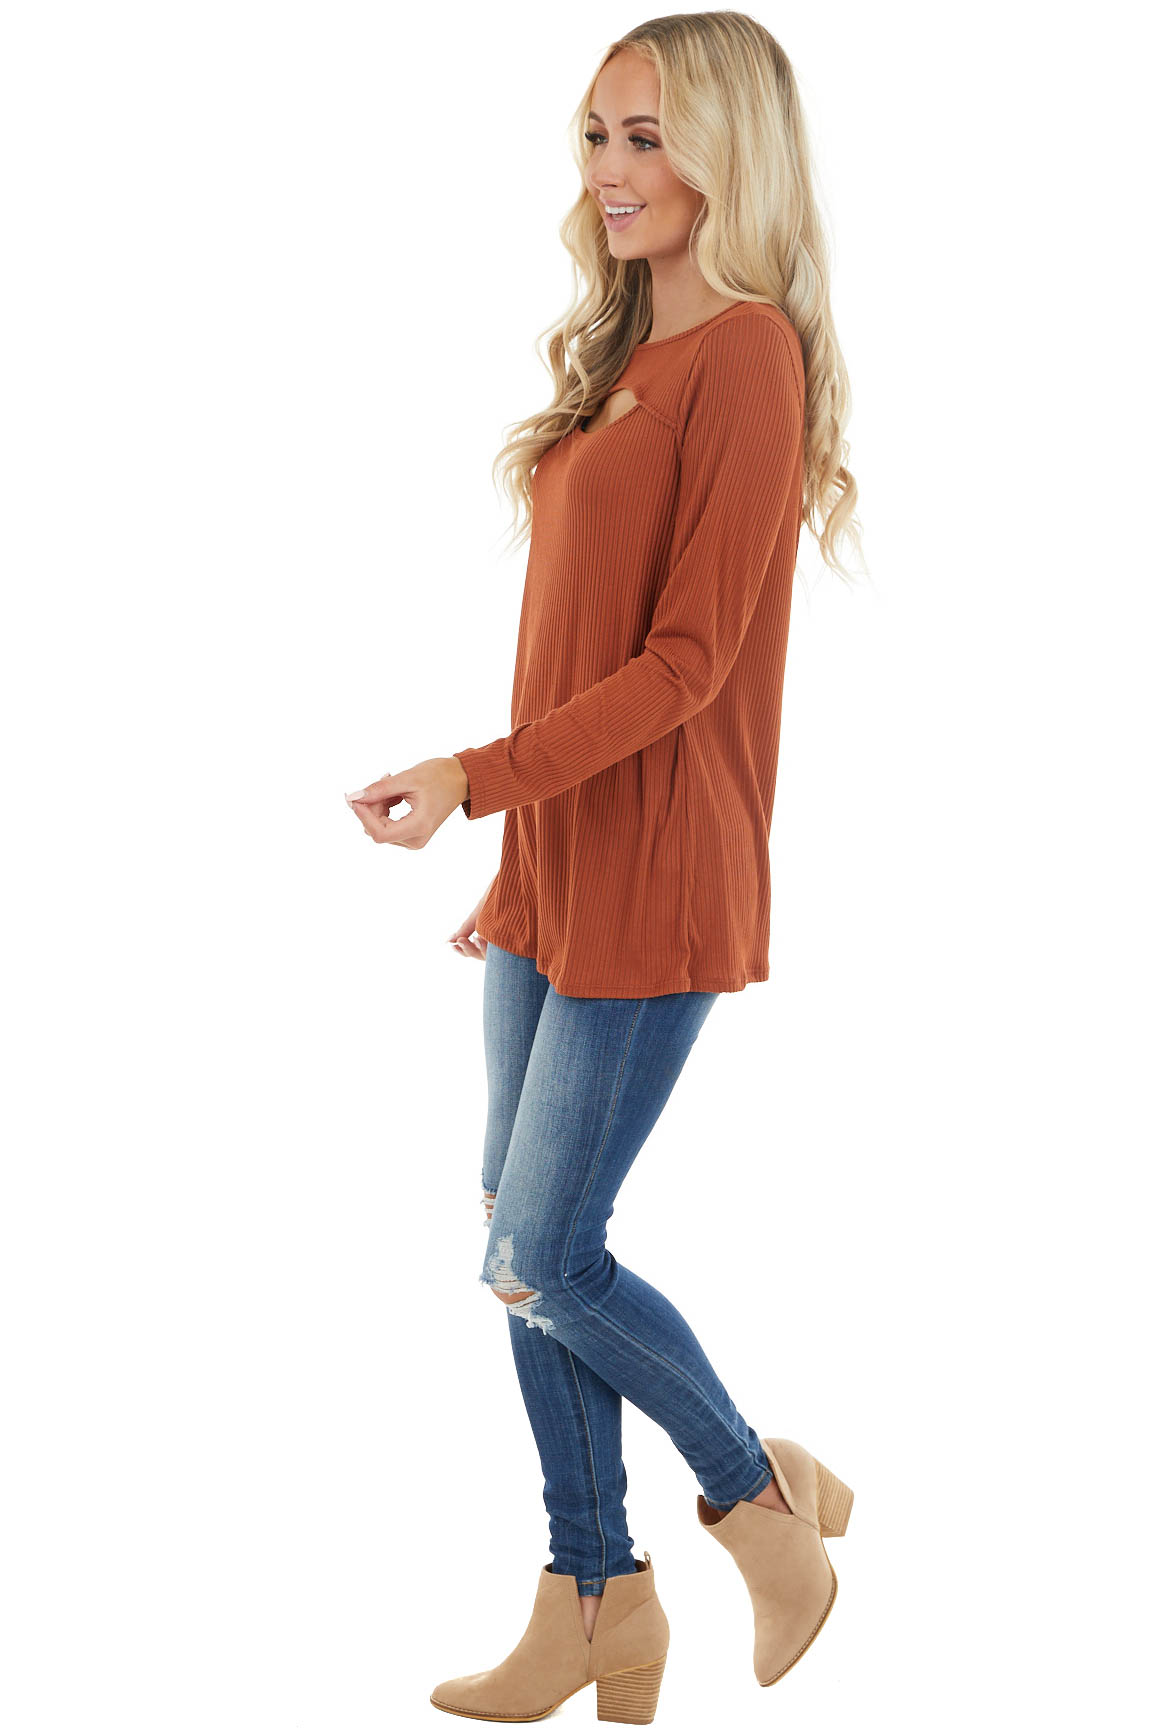 Terracotta Soft Ribbed Long Sleeve Top with Neckline Cutout